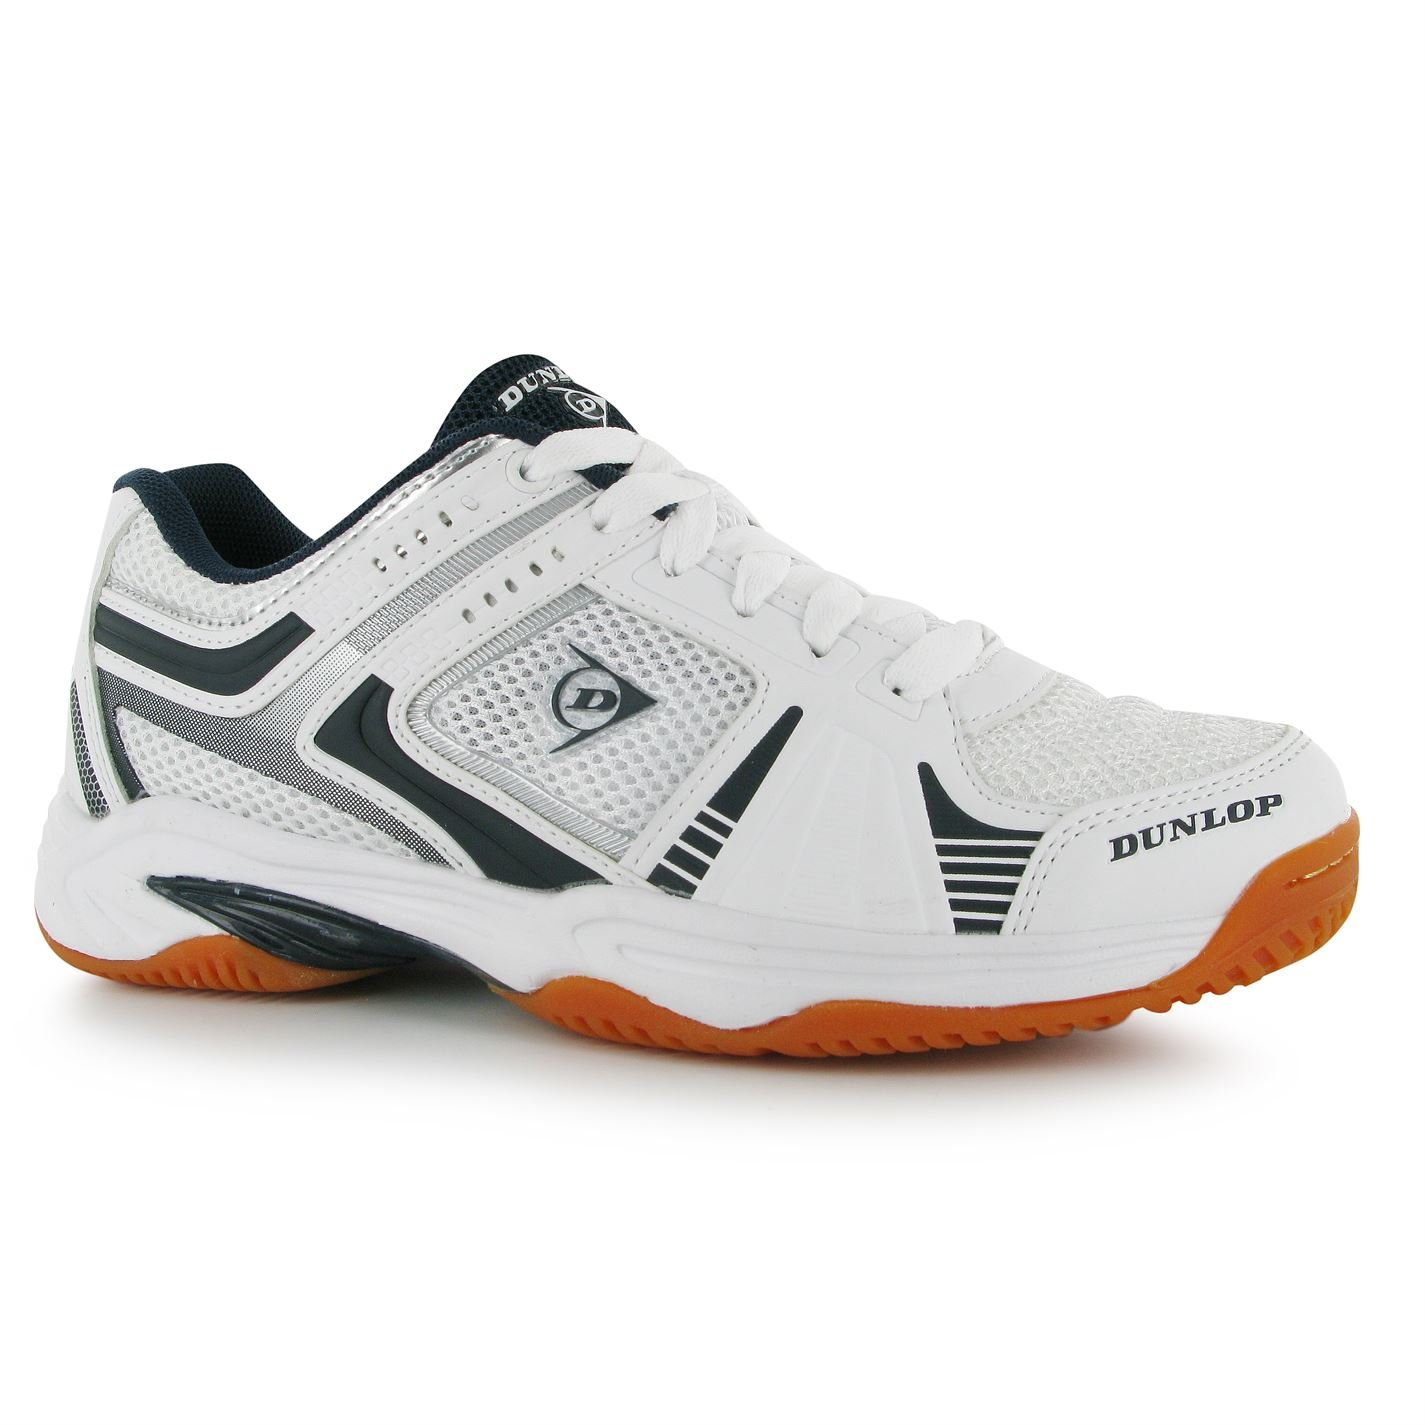 Dunlop Mens Indoor Squash Shoe Molded Non Marking Sole Footwear Brand New White/Navy 13 (47)